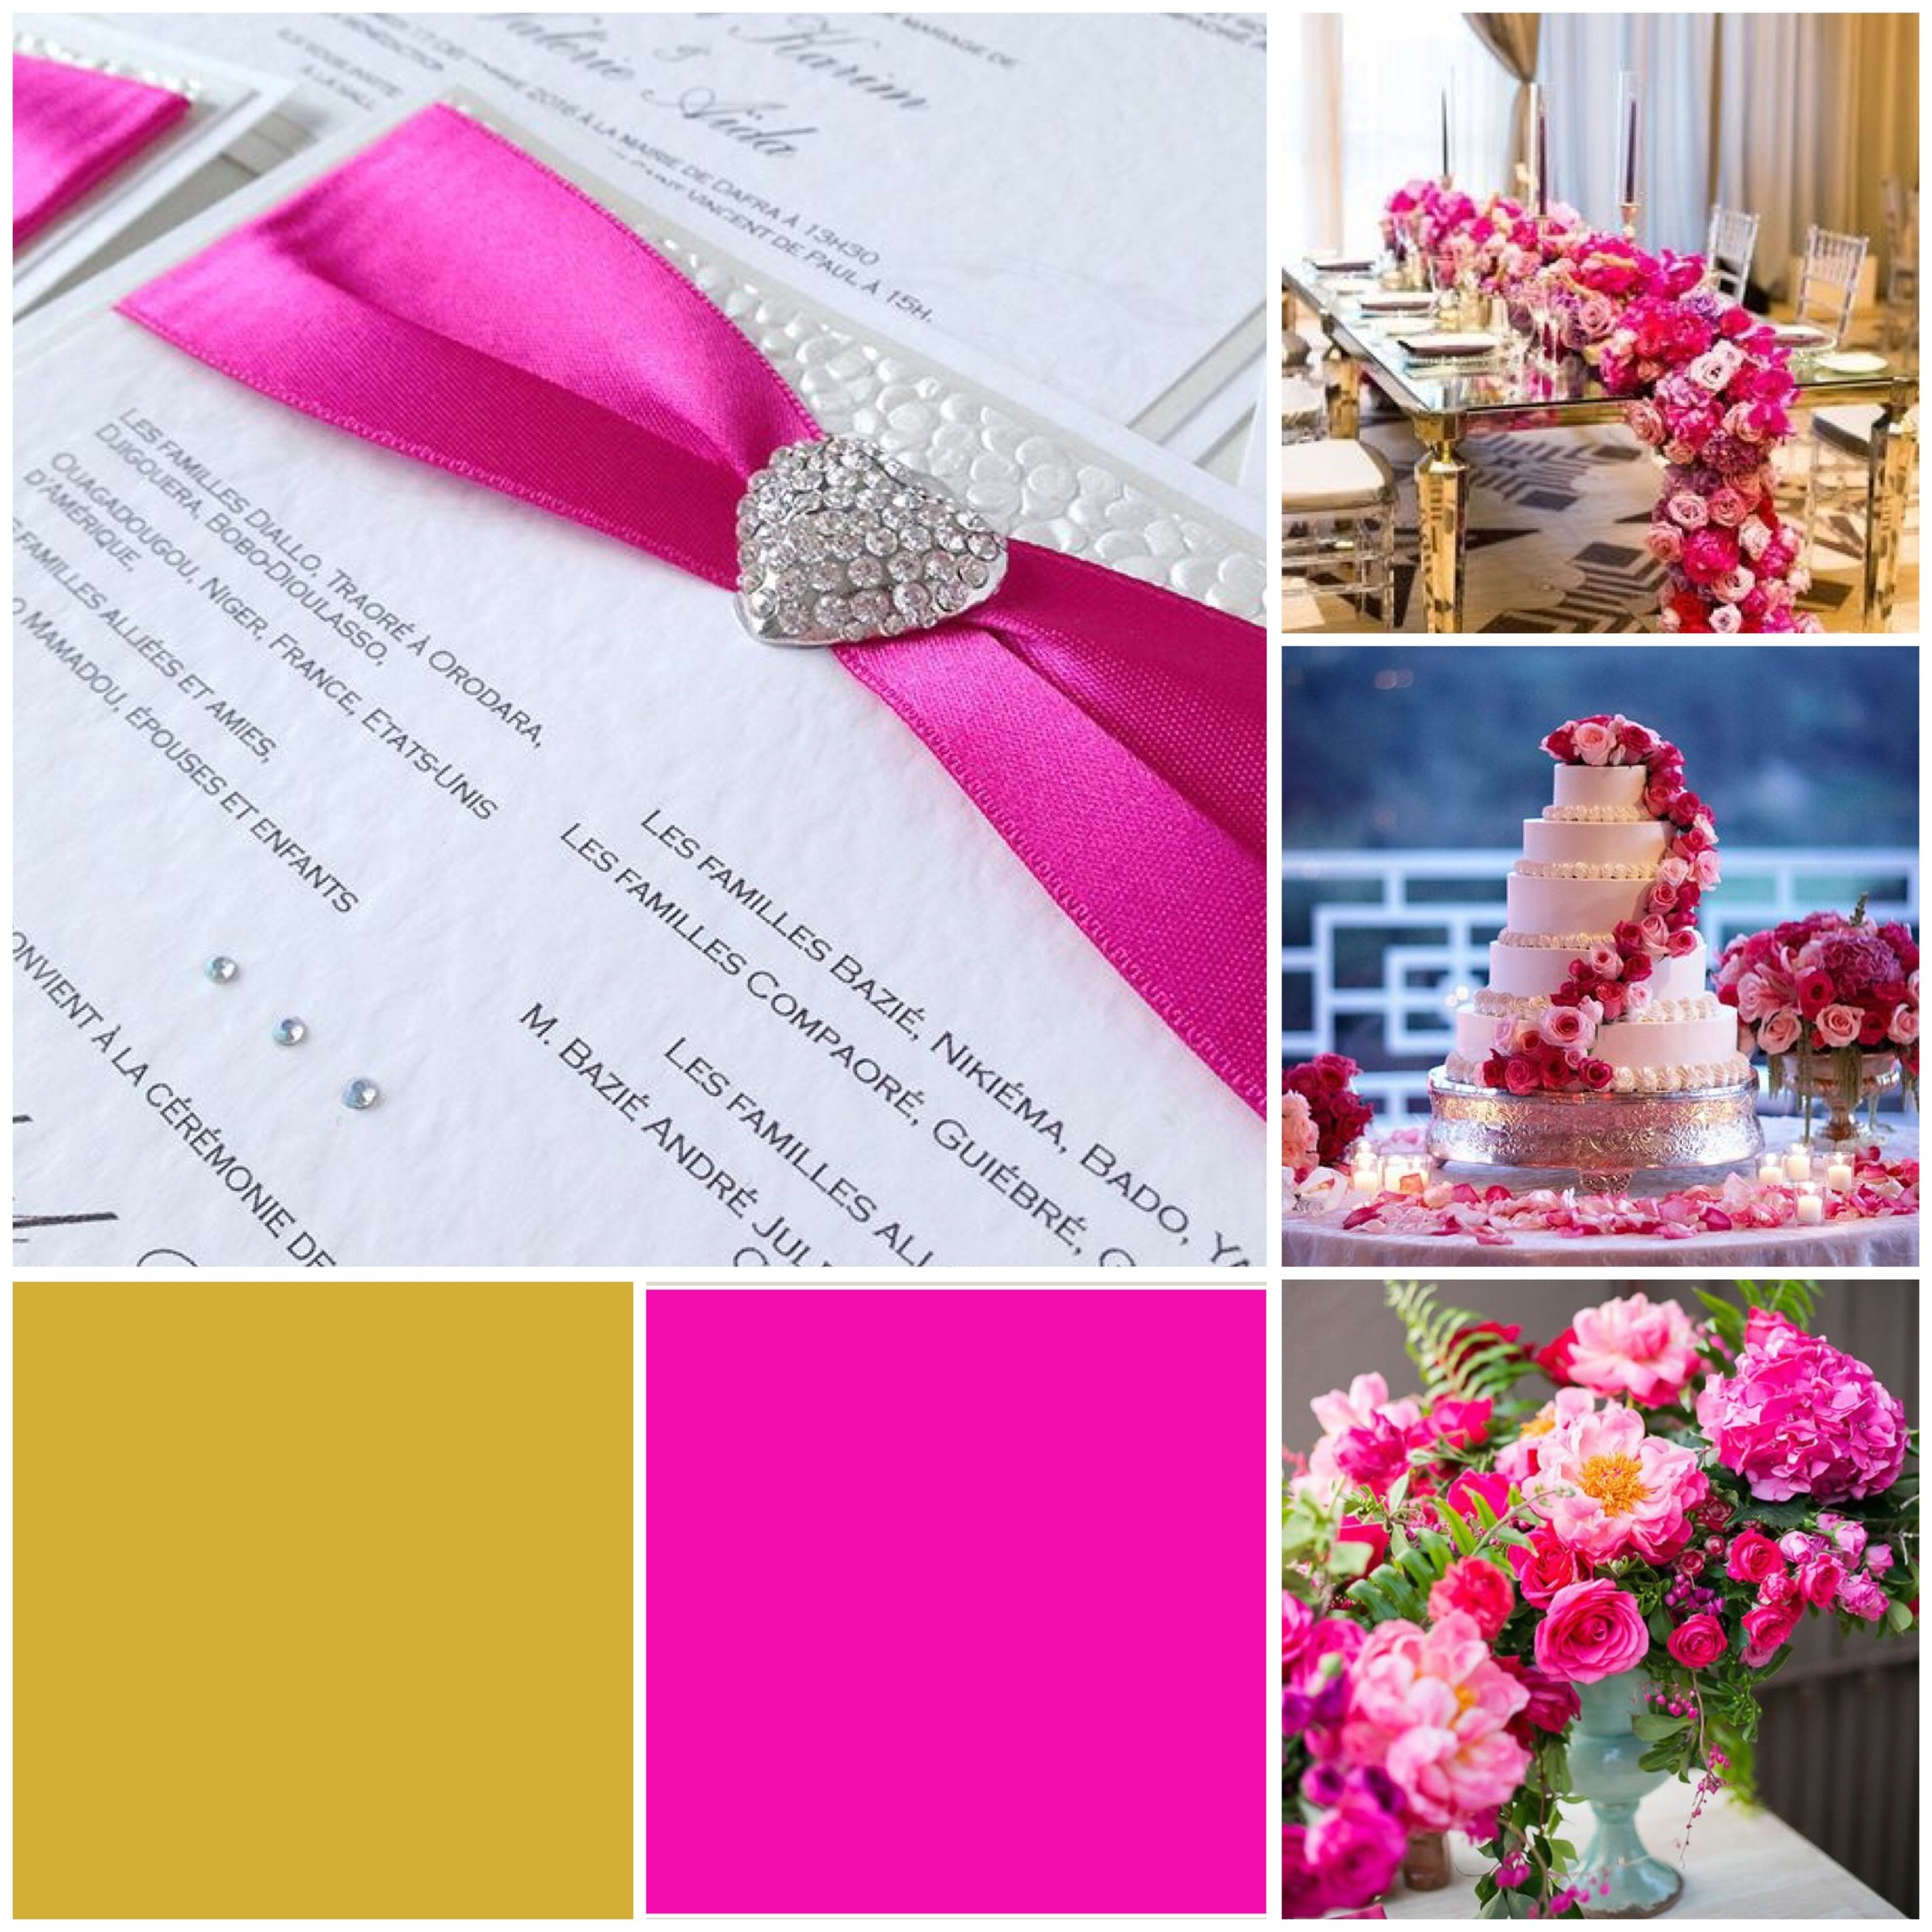 Shocking Pink & Gold moodboard for a wedding